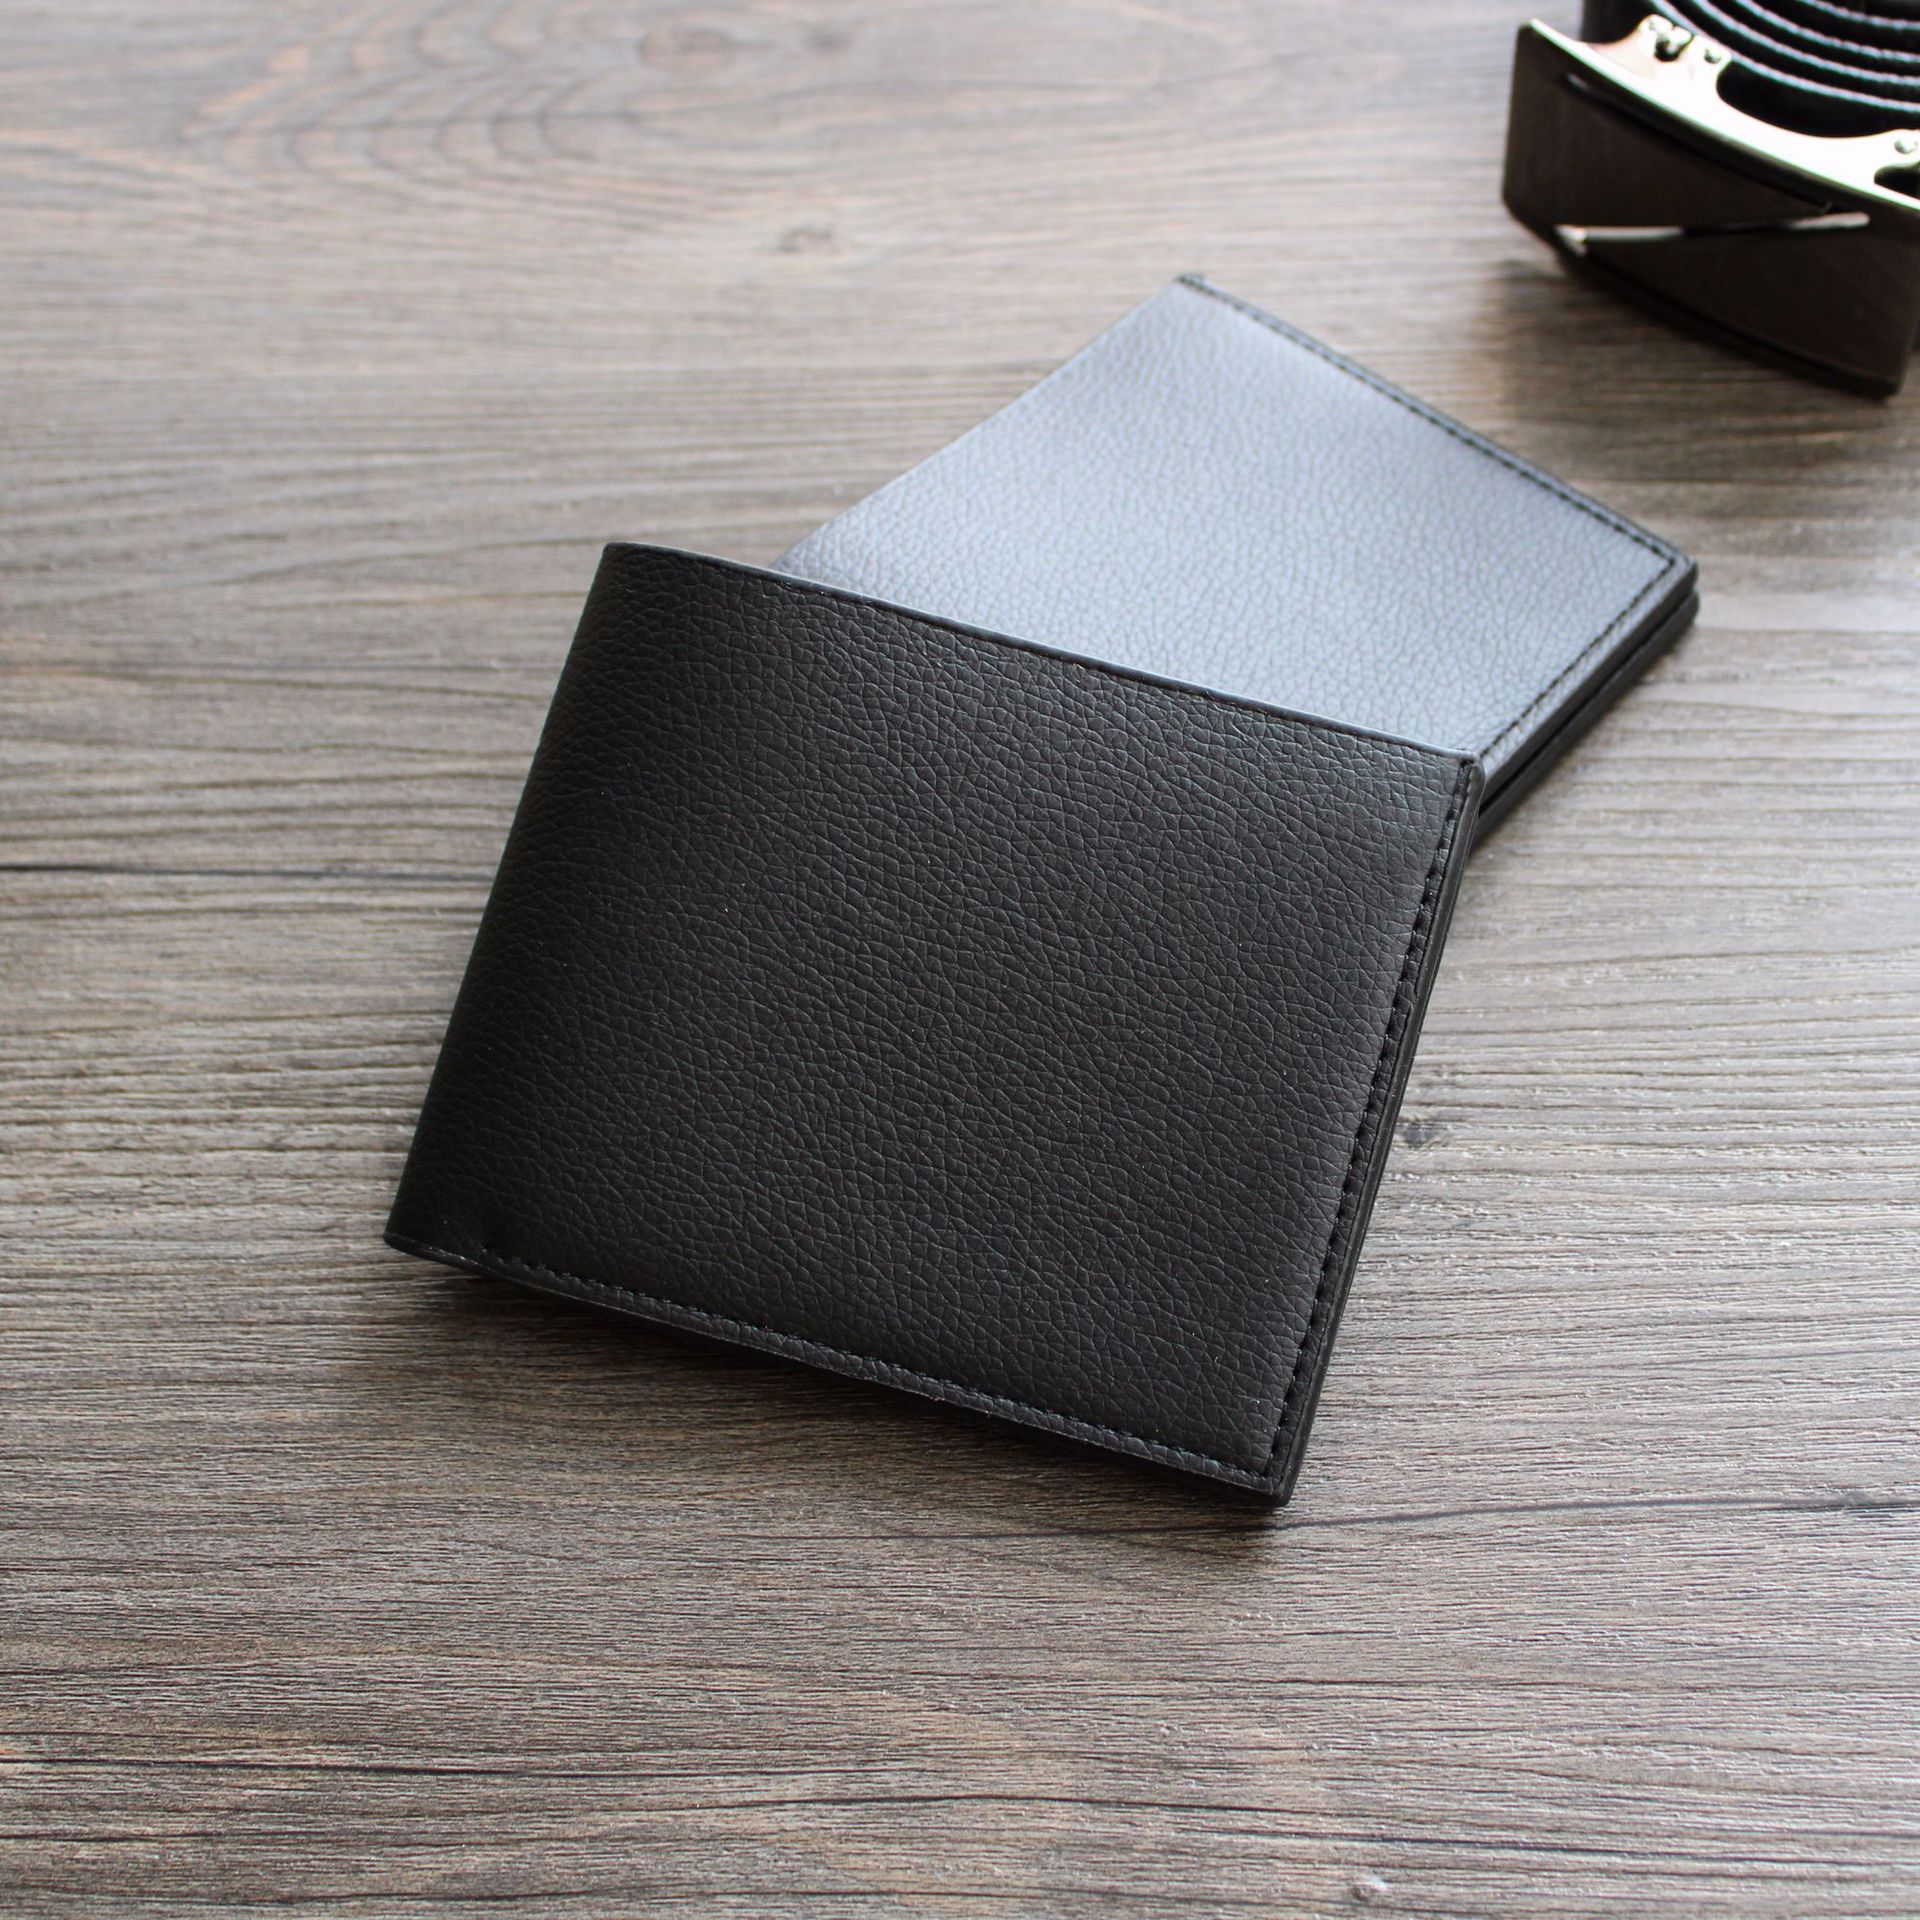 Wallet Fashion Short Bifold Men Wallet Casual Soild Men Wallets With Coin Pocket Purses Male Wallets